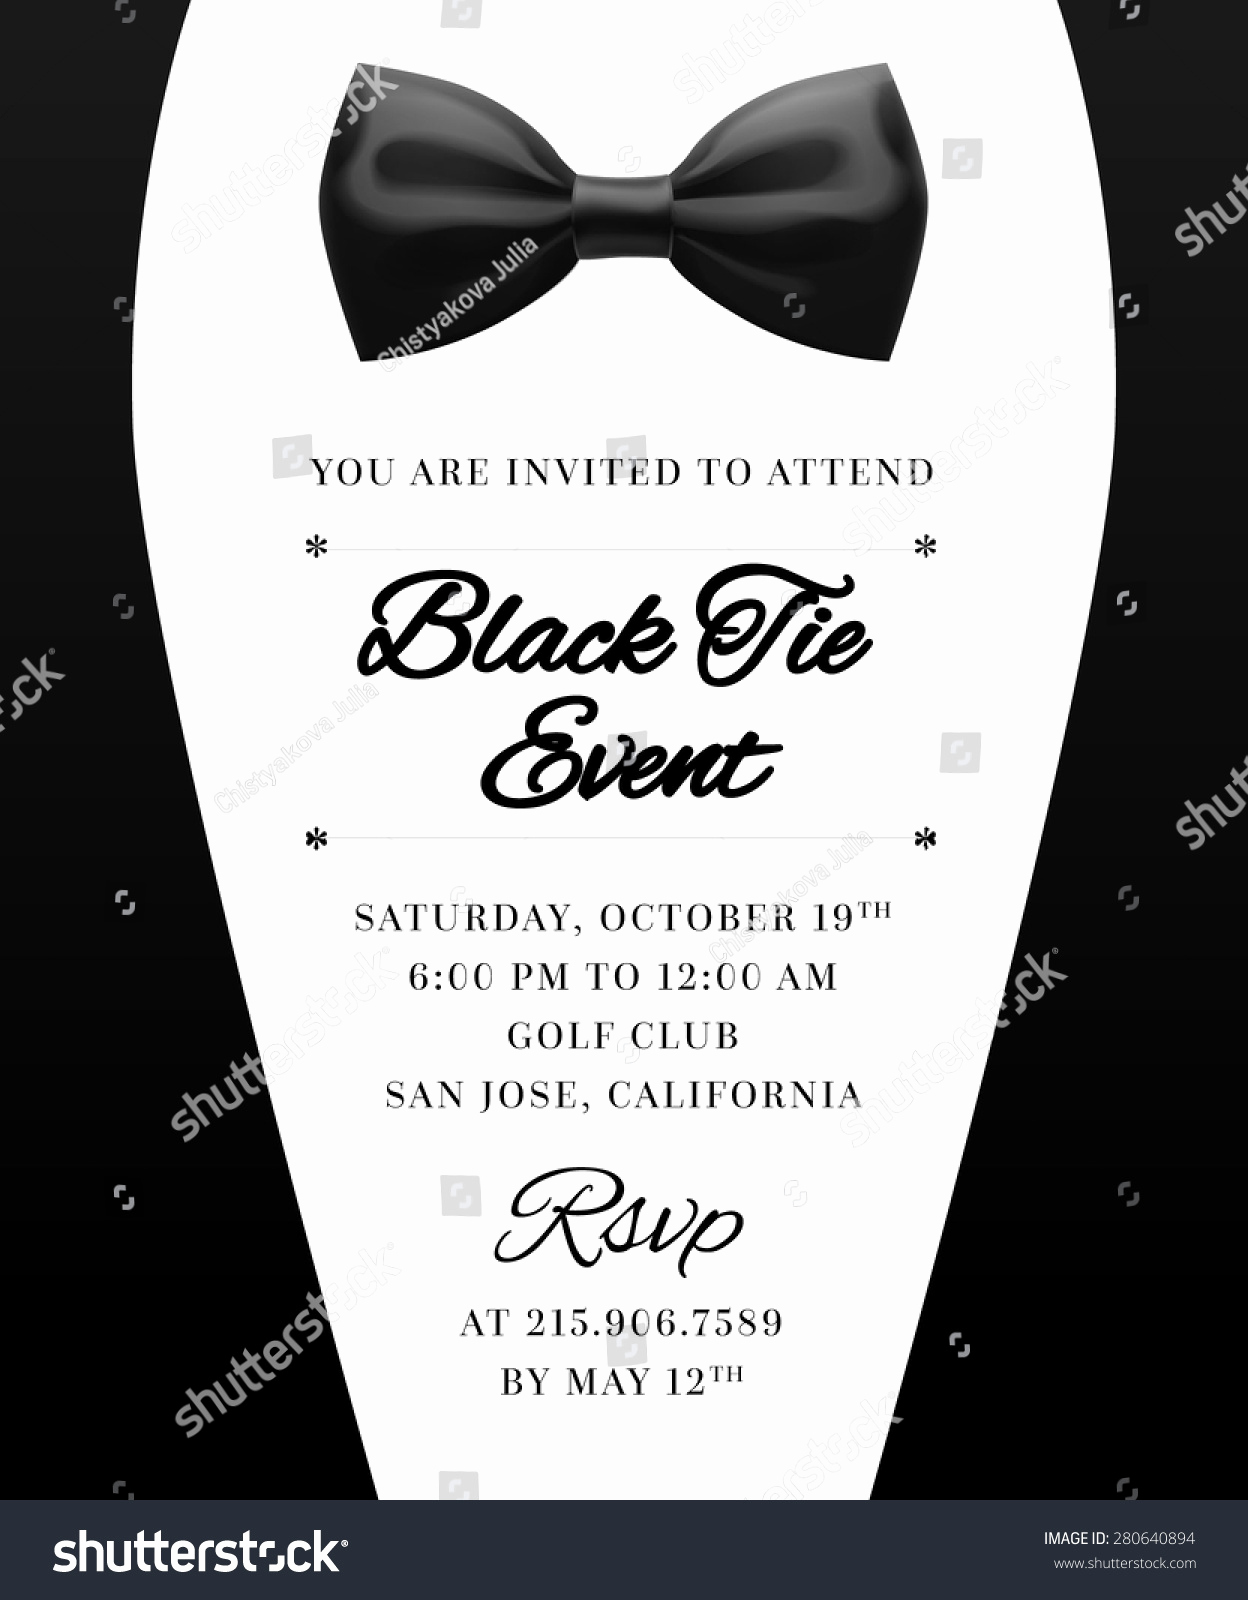 Black Tie event Invitation Awesome Elegant Vector Black Tie event Invitation Stock Vector